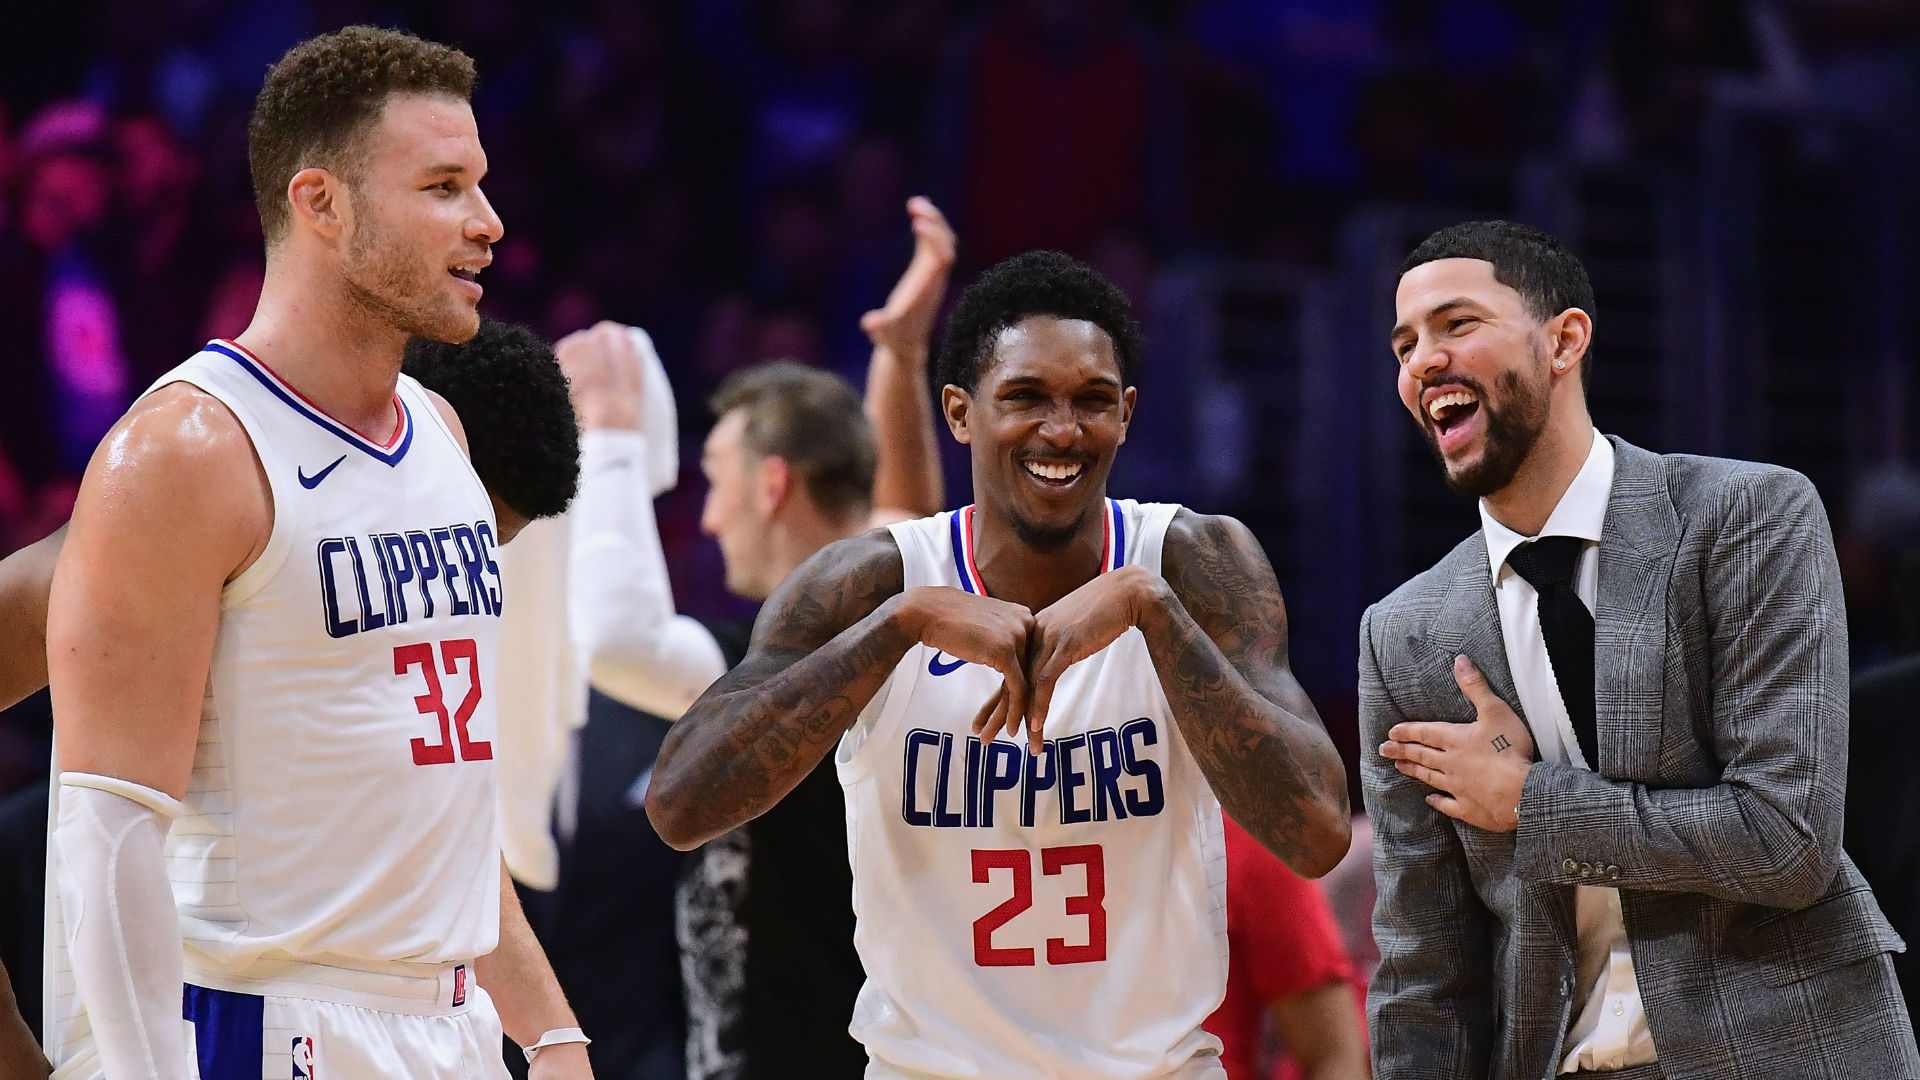 National Basketball Association is investigating locker-room incident involving the Clippers and Rockets